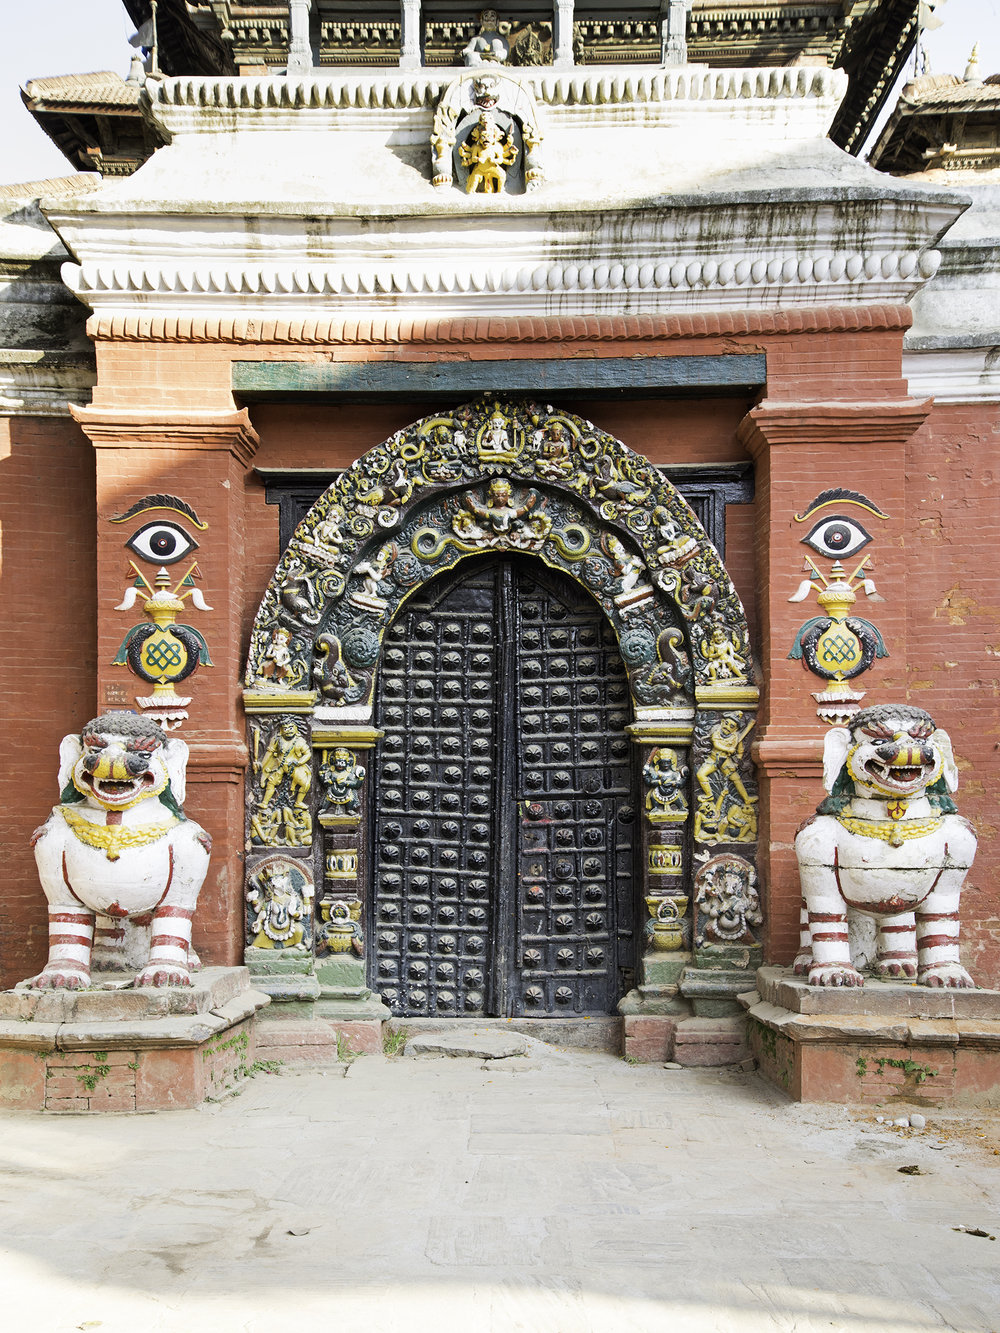 This door stands proudly in Durbar Square.  The colorful statues, colorful frame, and texture on the door really drew me to it.